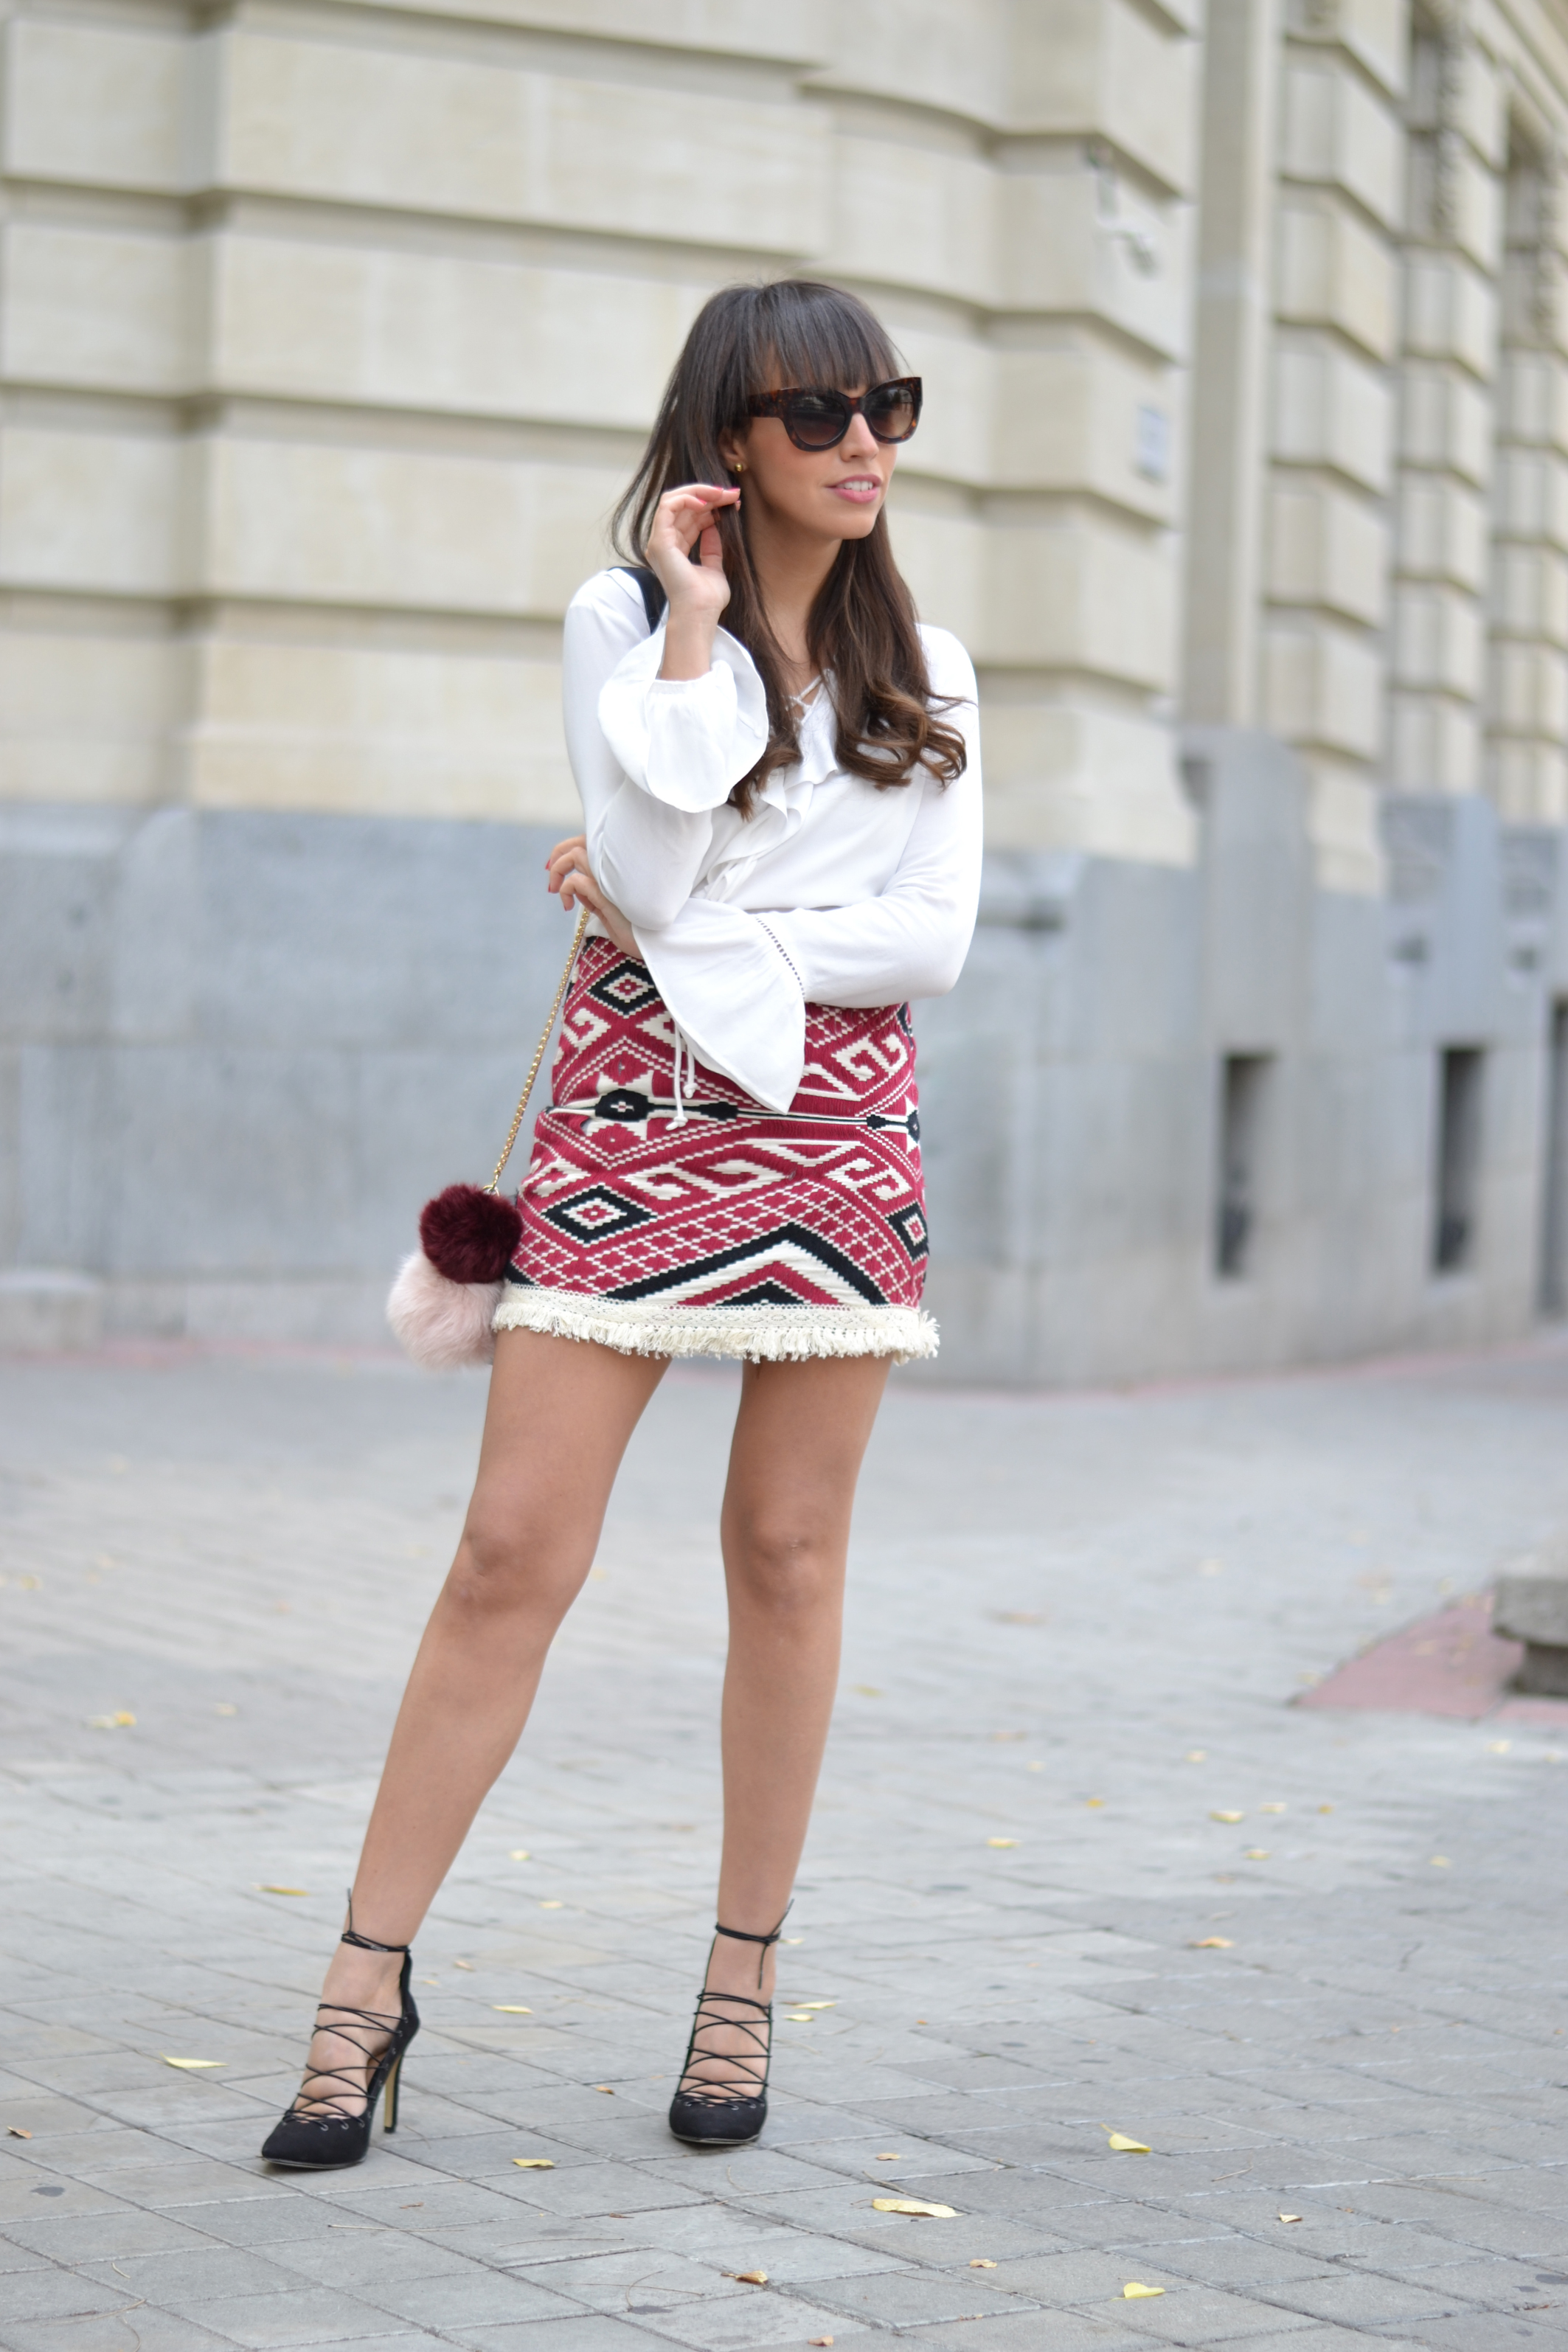 Street style, flounce shirt, ethnic print skirt, lace up shoes